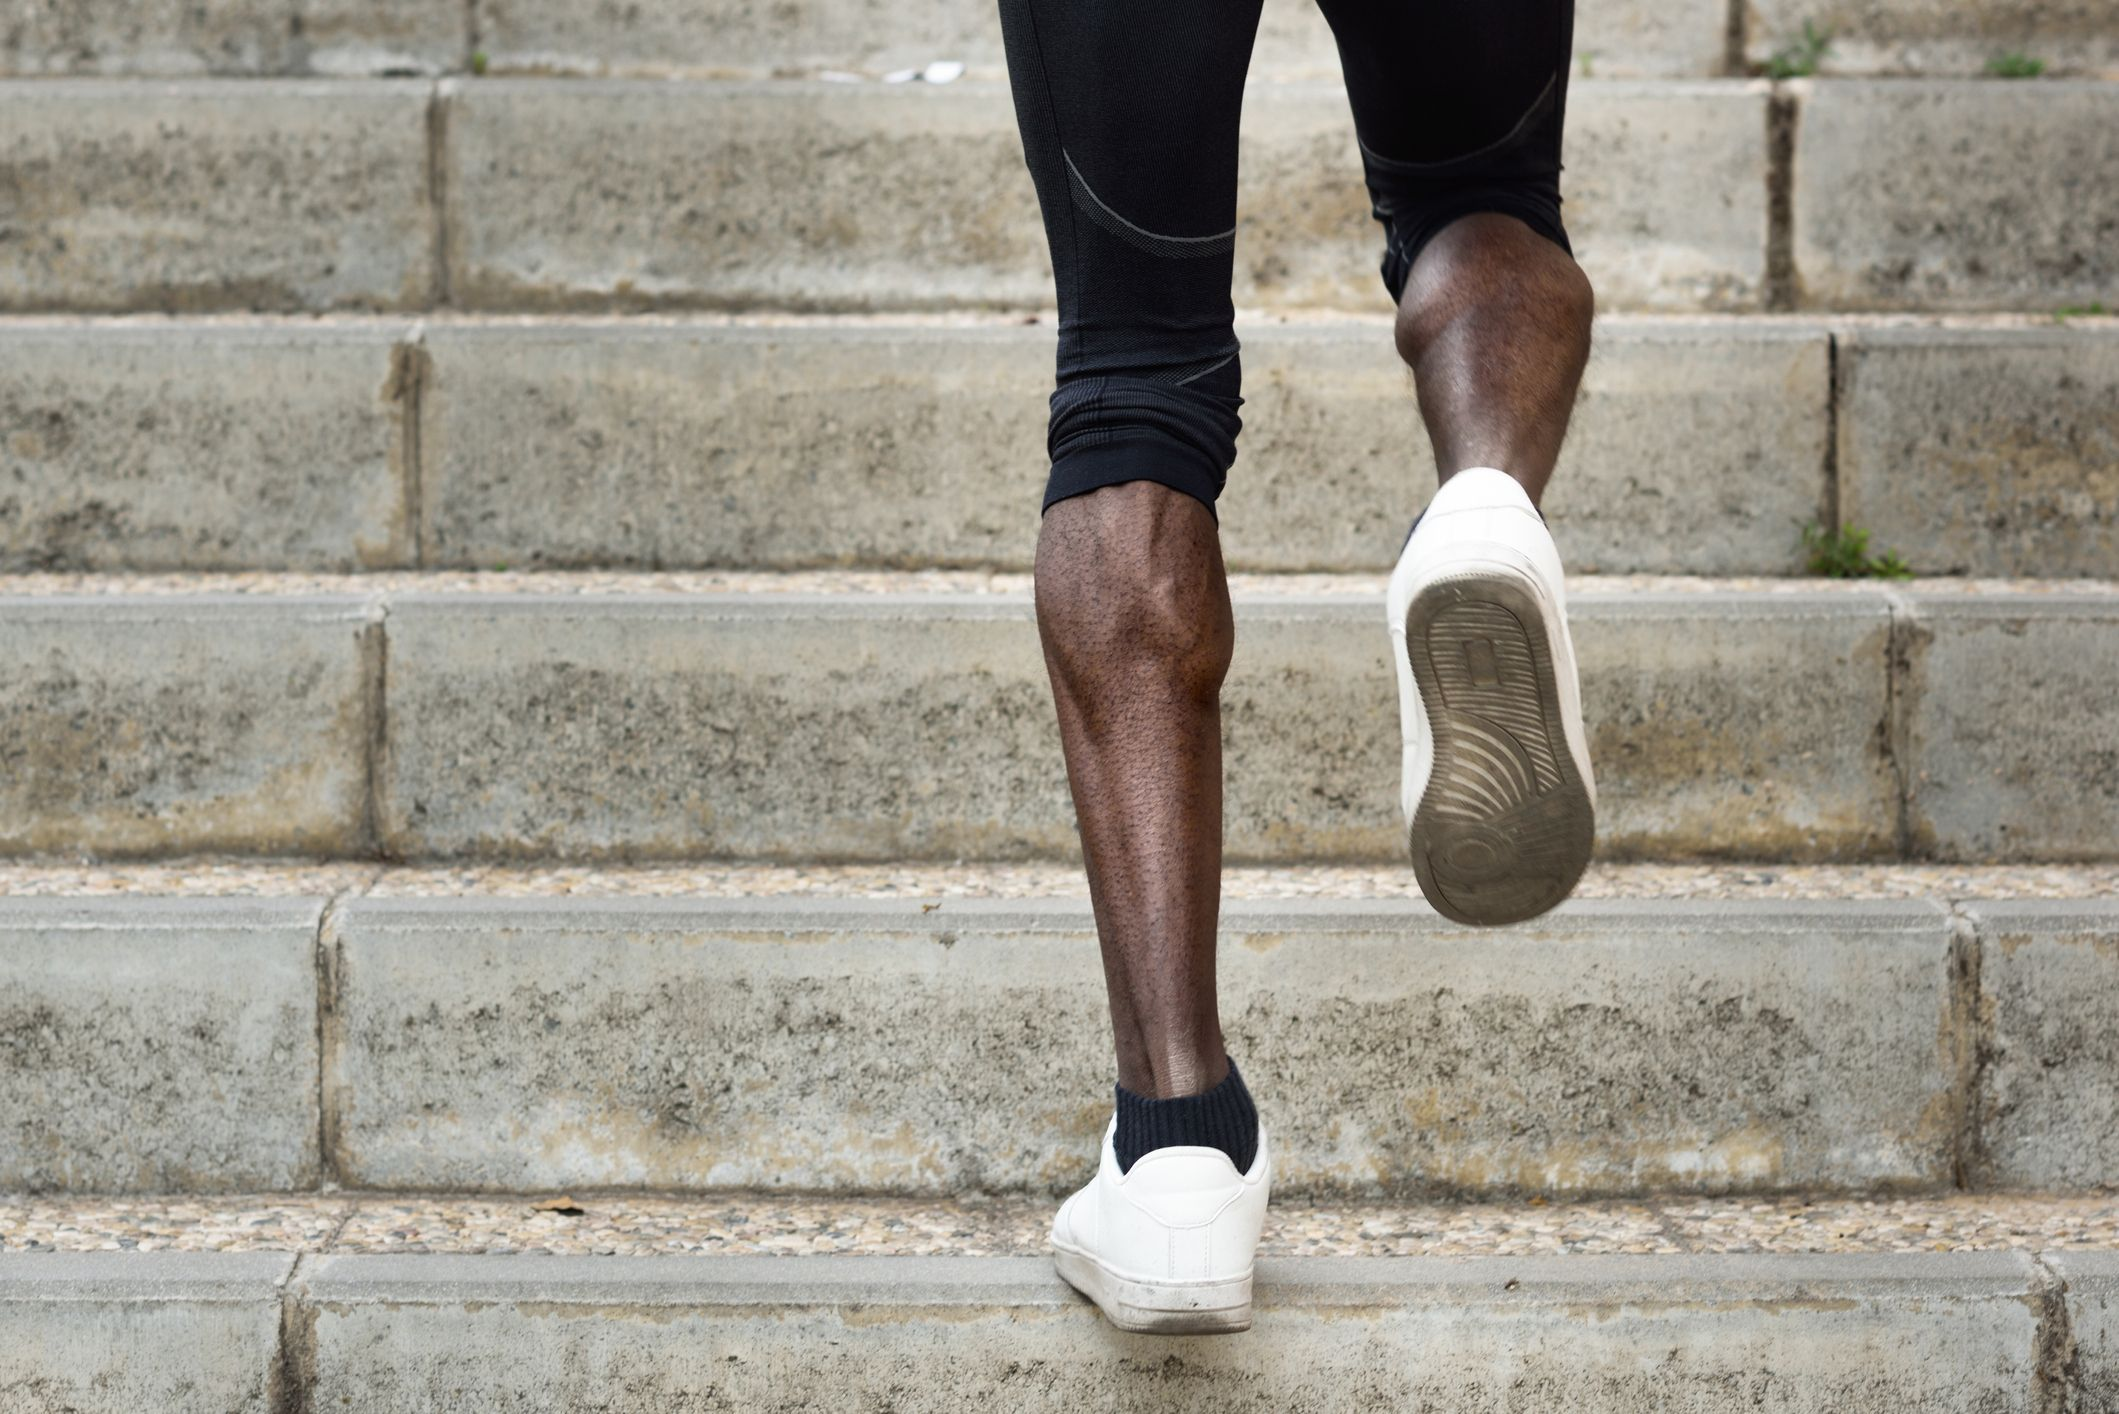 Calf Stretches and Calf Workouts to Run Stronger and Prevent Injury